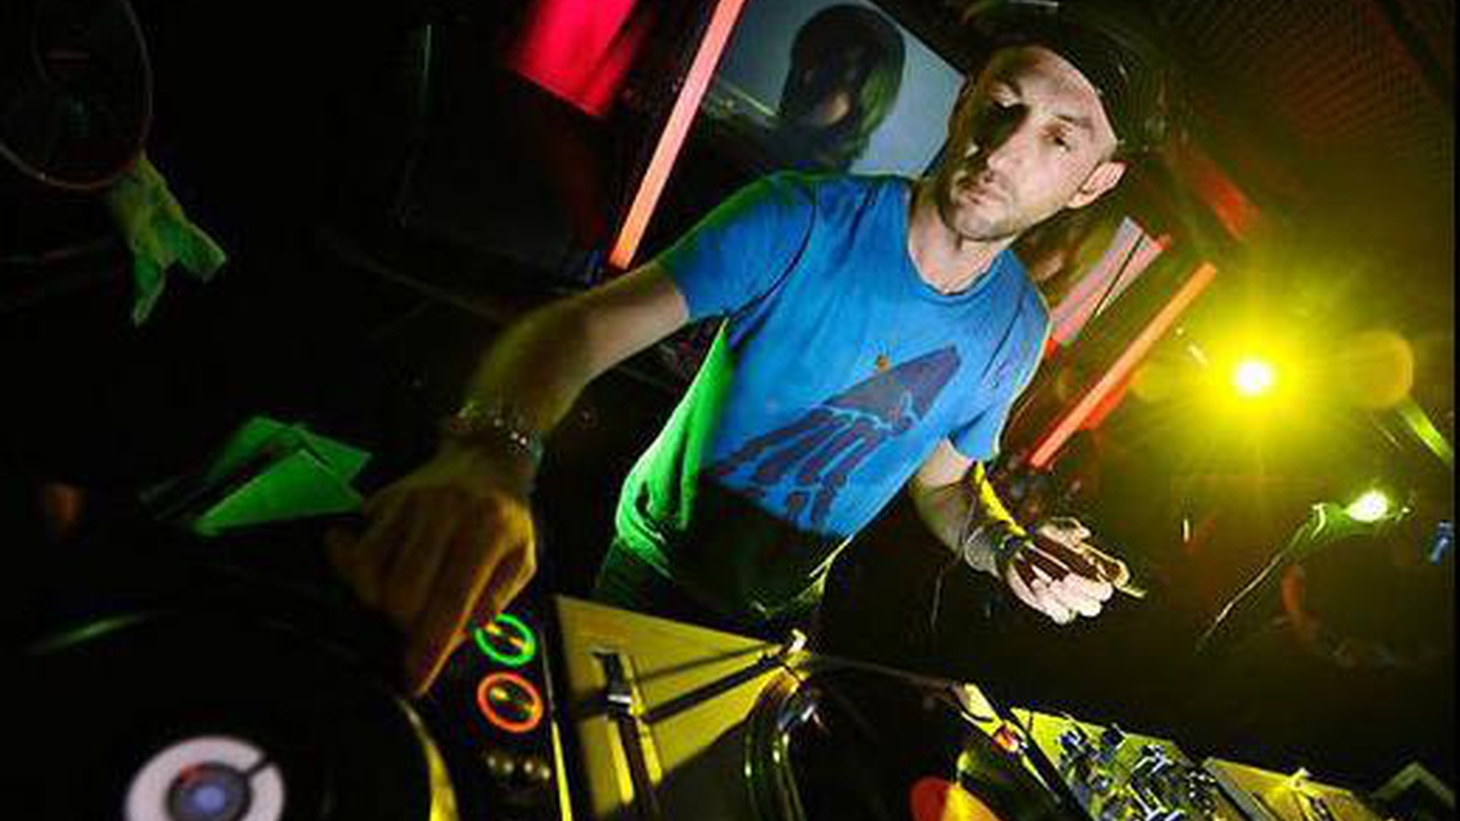 Celebrating the release of his latest compilation on Crosstown Rebels, Get Lost 4, London-based DJ/producer Damian Lazarus joins Raul for a guest DJ set.